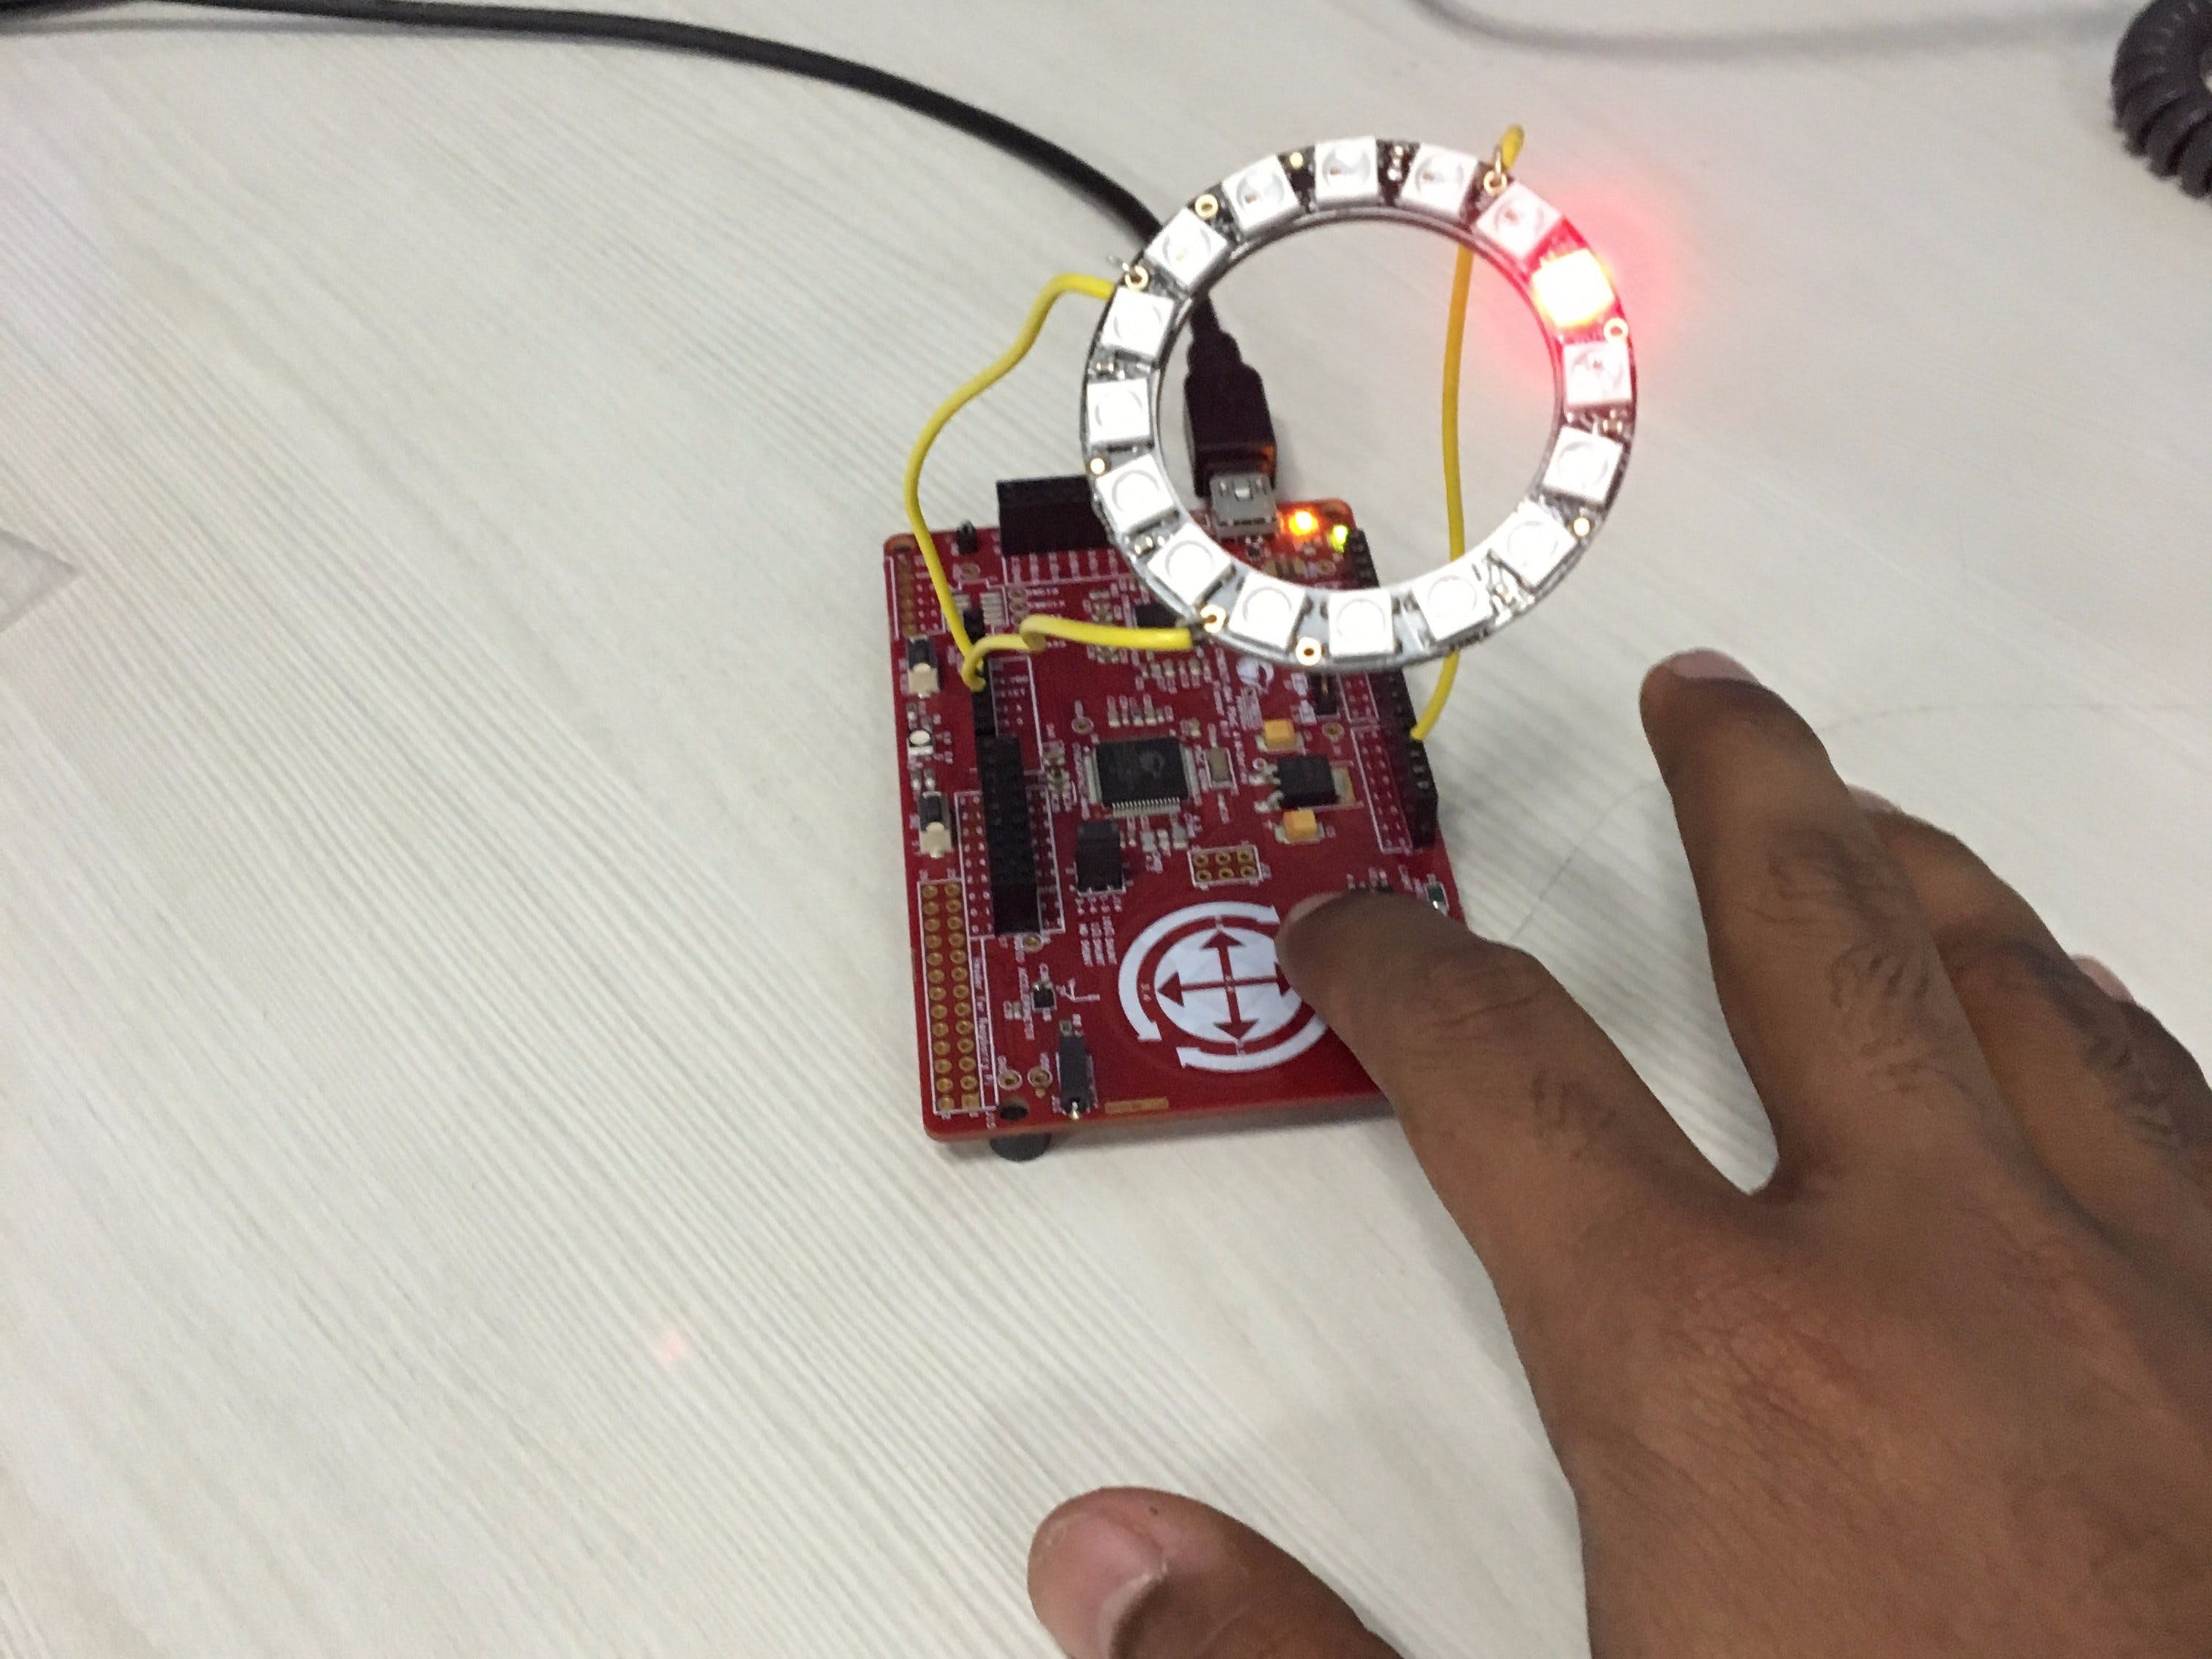 CapSense Gesture Recognition Using PSoC and WS2812